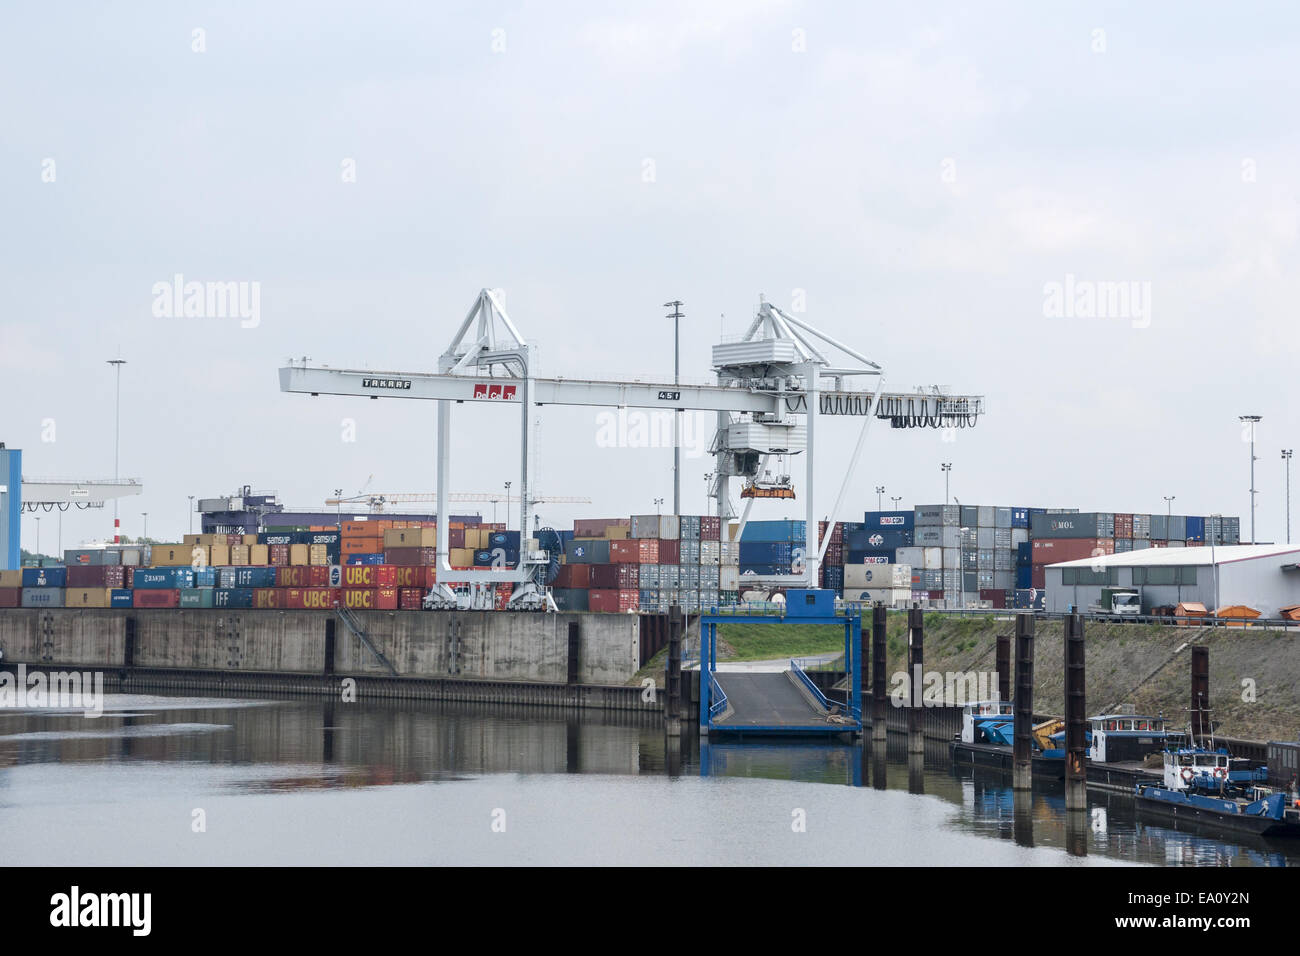 Container harbor Duisburg Ruhrort, Germany Stock Photo